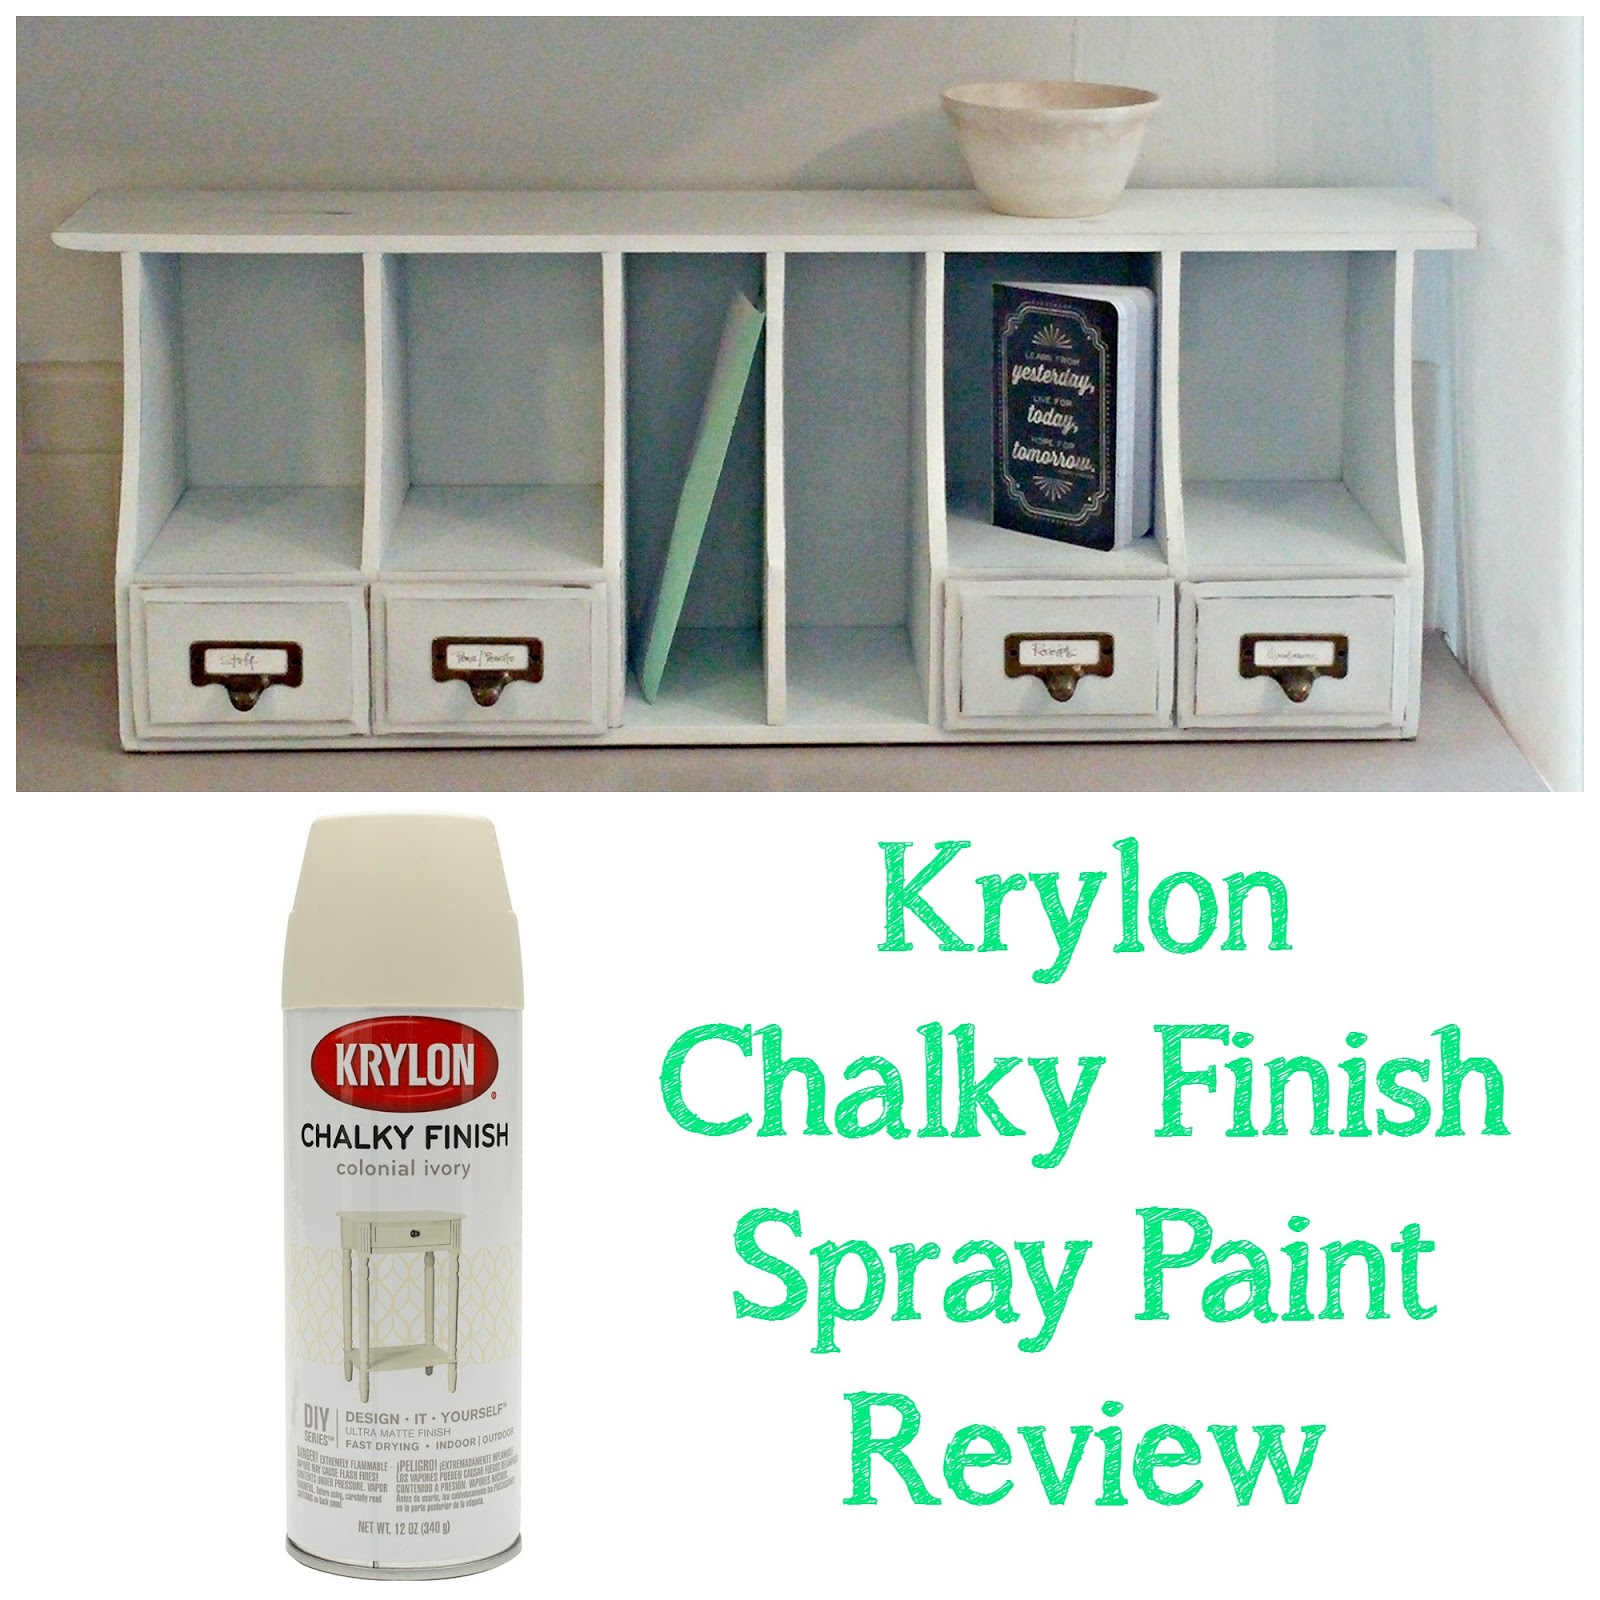 Krylon chalky finish spray paint review desk organizer for Spray paint makeovers